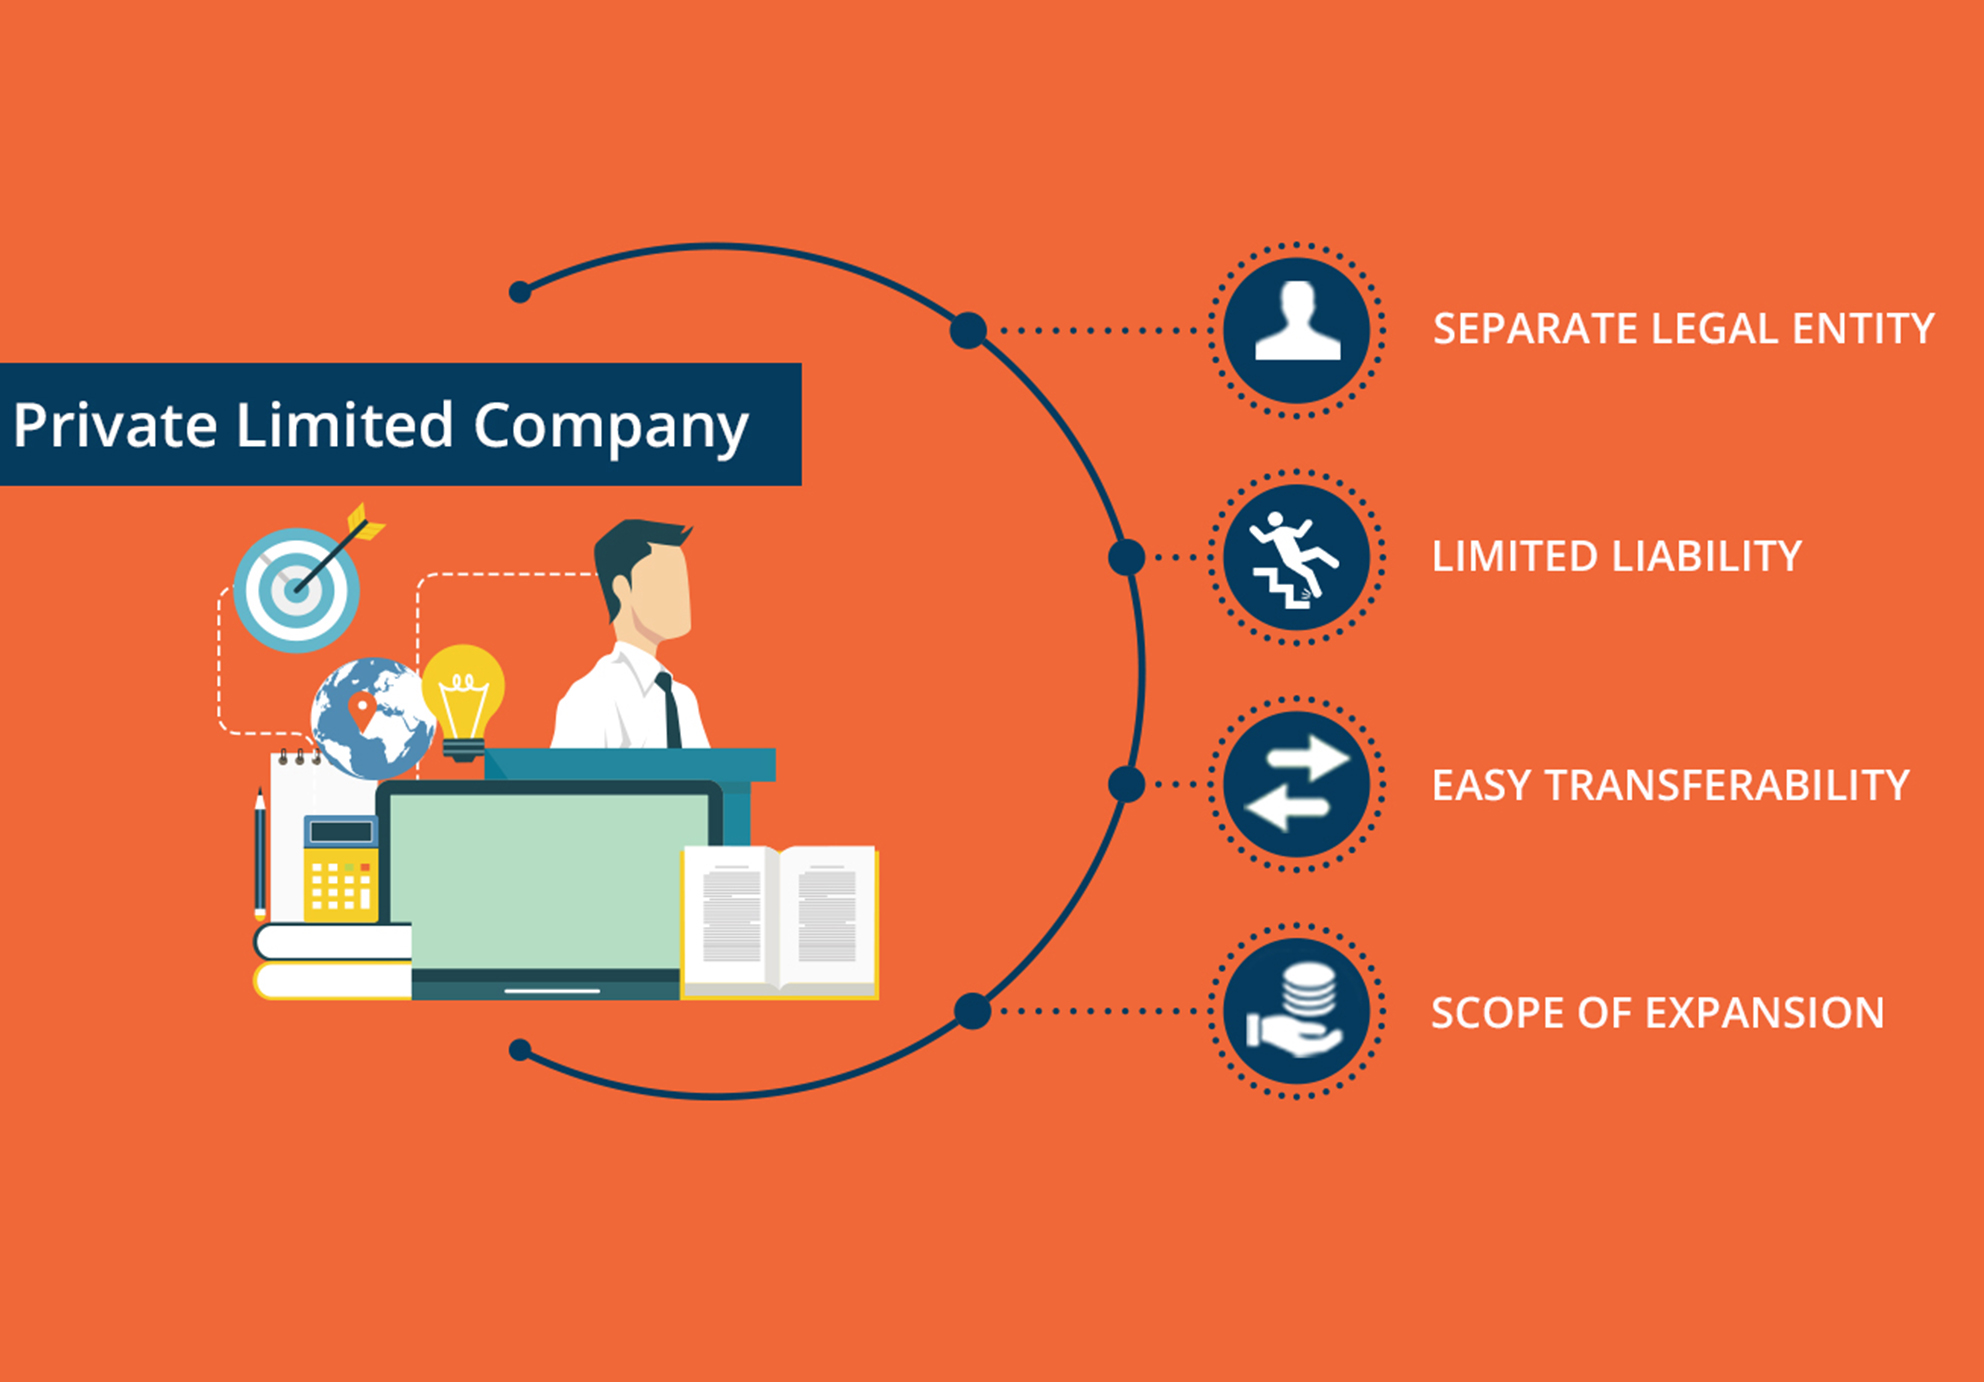 Legal Nestors || NRI Legal Solutions || NRI Legal Services || Indian Courts || Indian Law|| Real Estate Management || Property Management || Buy & Sell Property In India || Property Litigation || Due Diligence || Criminal & Civil Litigation || Family Law || Corporate Law || Immigration Assistance || Intellectual Rights || Trademark Registration || Trademark Objections || Patent Registration|| Business Registration || Business Planning || Compliances || Taxation || Legal Documents || India || Nri Legal Services || Chandigarh || Delhi || Punjab || Haryana || Private Limted Company Registration